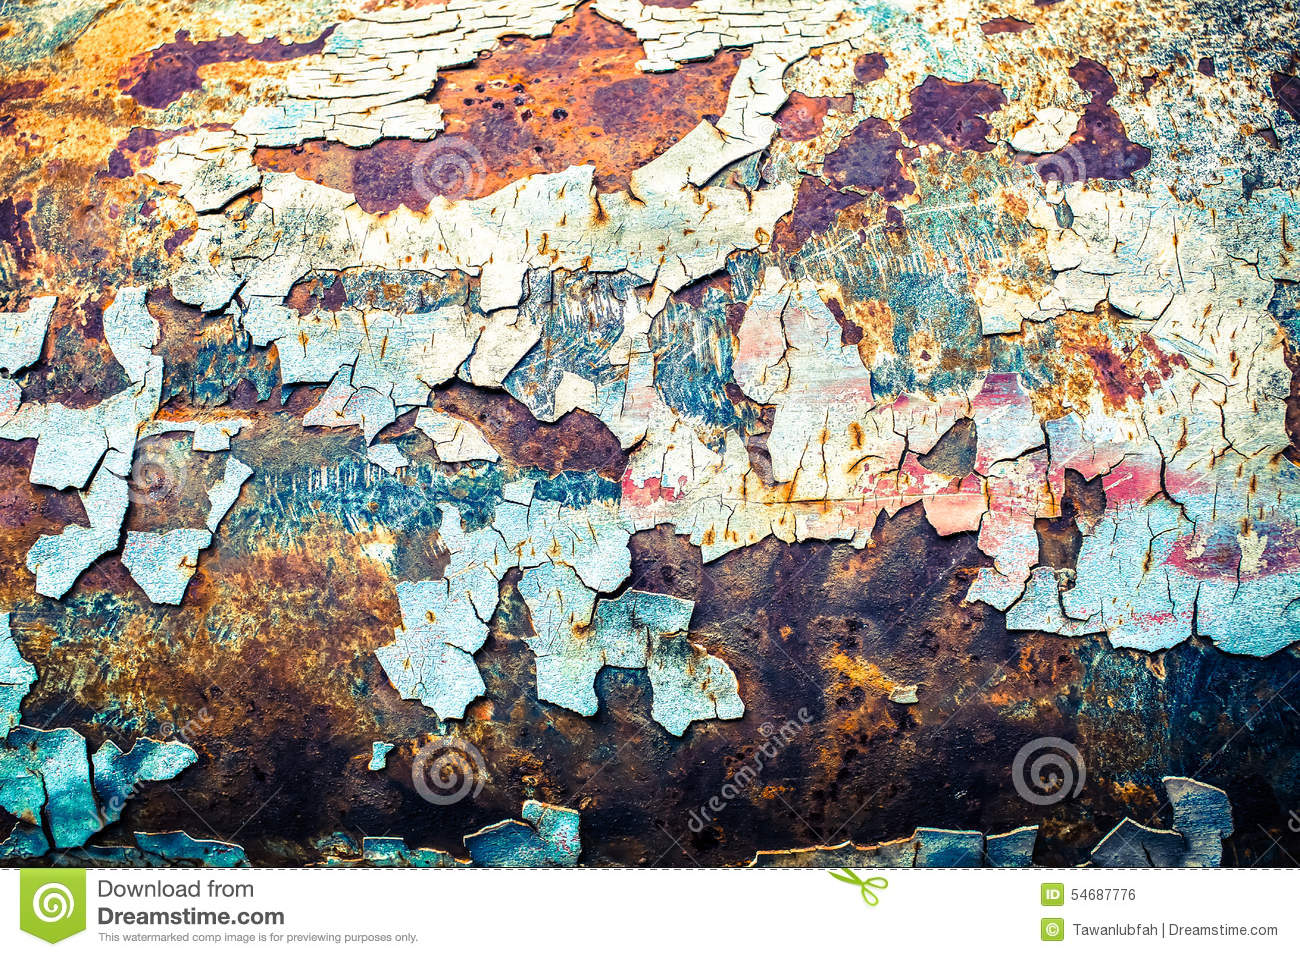 Rough Texture Background: Seamless Texture Of Rusty Colored Rough, Vintage